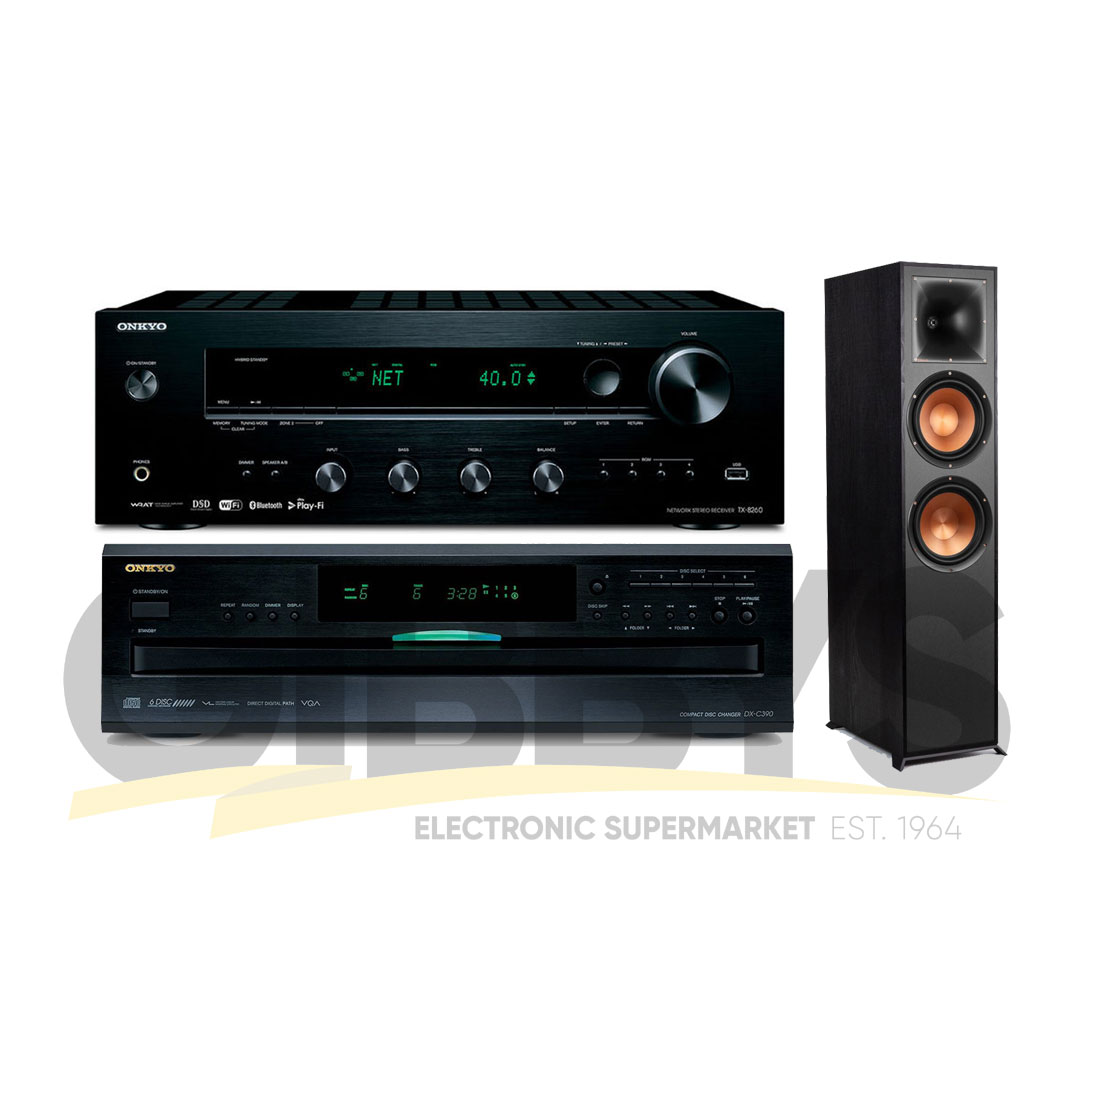 Onkyo TX-8270 Stereo Receiver | DX-C390 CD Player | Klipsch R-820FB Tower  Speakers